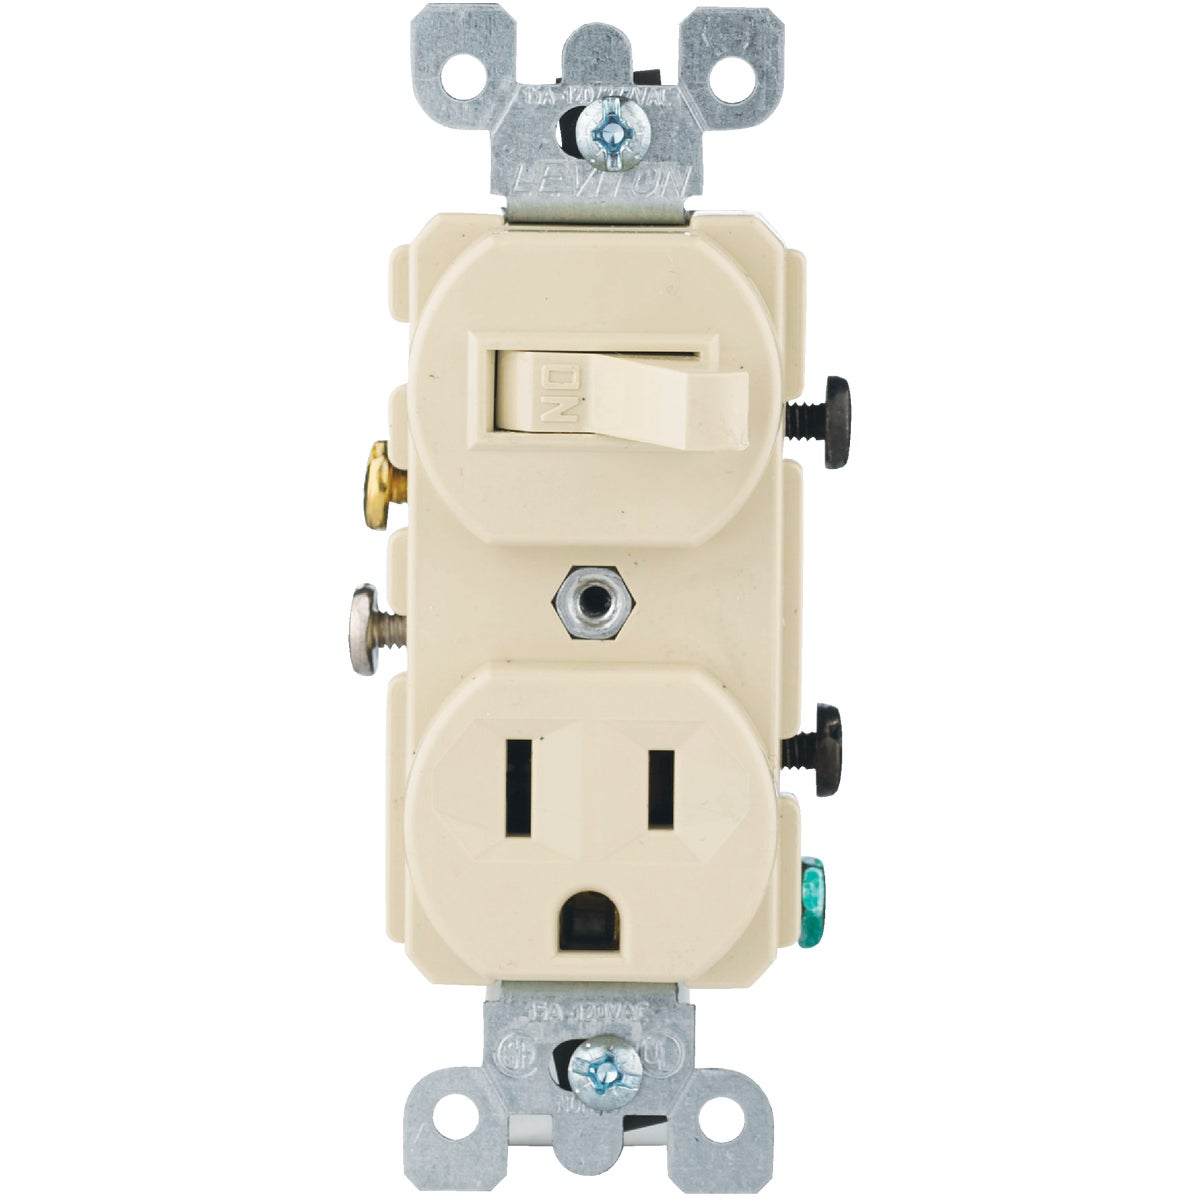 IV OUTLET SWITCH - 52250IS by Leviton Mfg Co